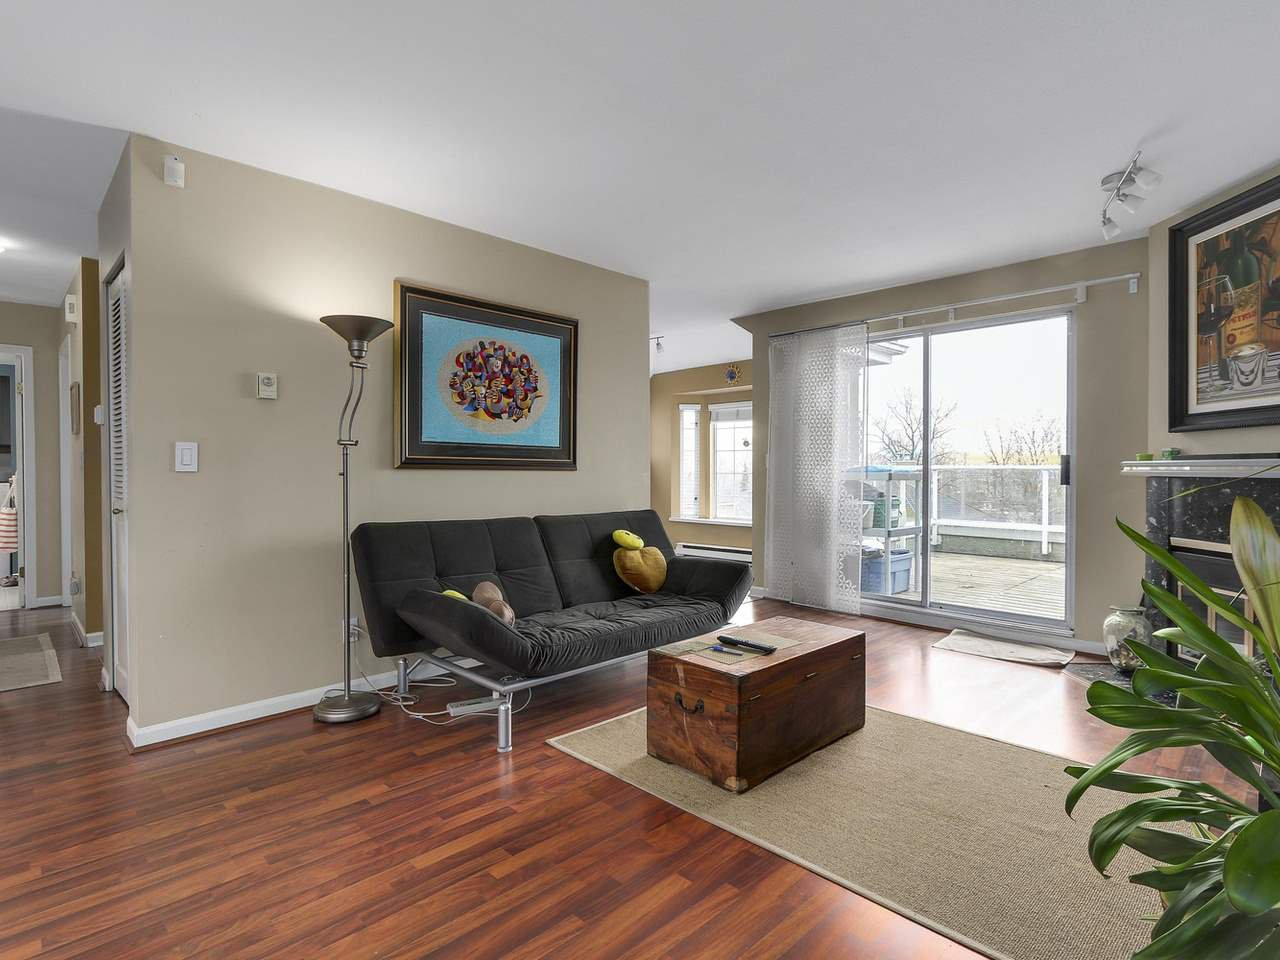 Photo 3: Photos: 2345 QUAYSIDE COURT in Vancouver: Fraserview VE Townhouse for sale (Vancouver East)  : MLS®# R2154138